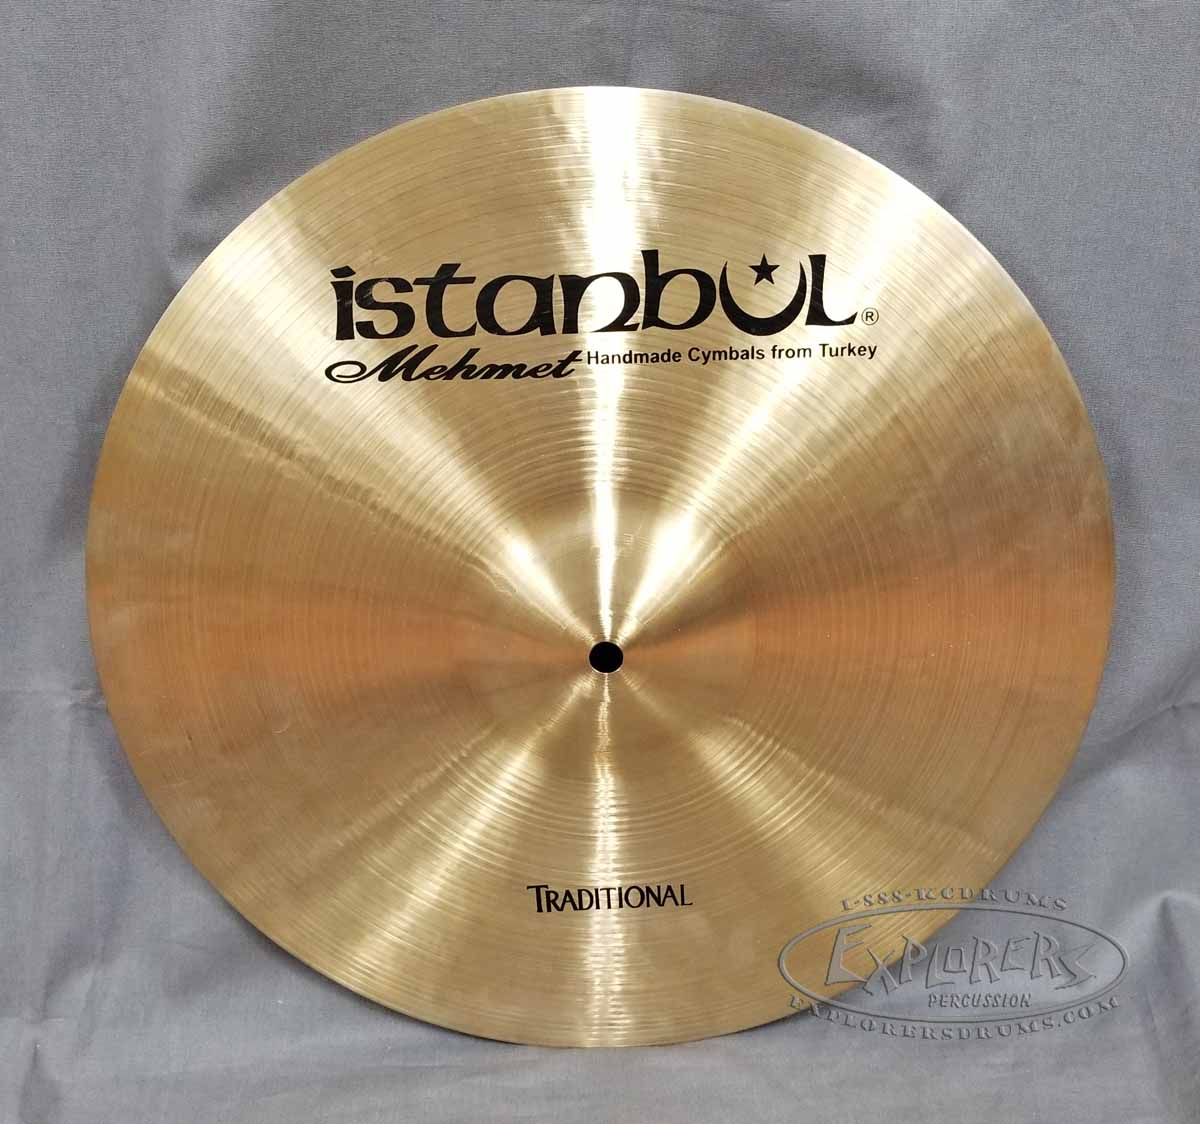 istanbul mehmet 16 traditional dark crash cymbal 1025 grams. Black Bedroom Furniture Sets. Home Design Ideas